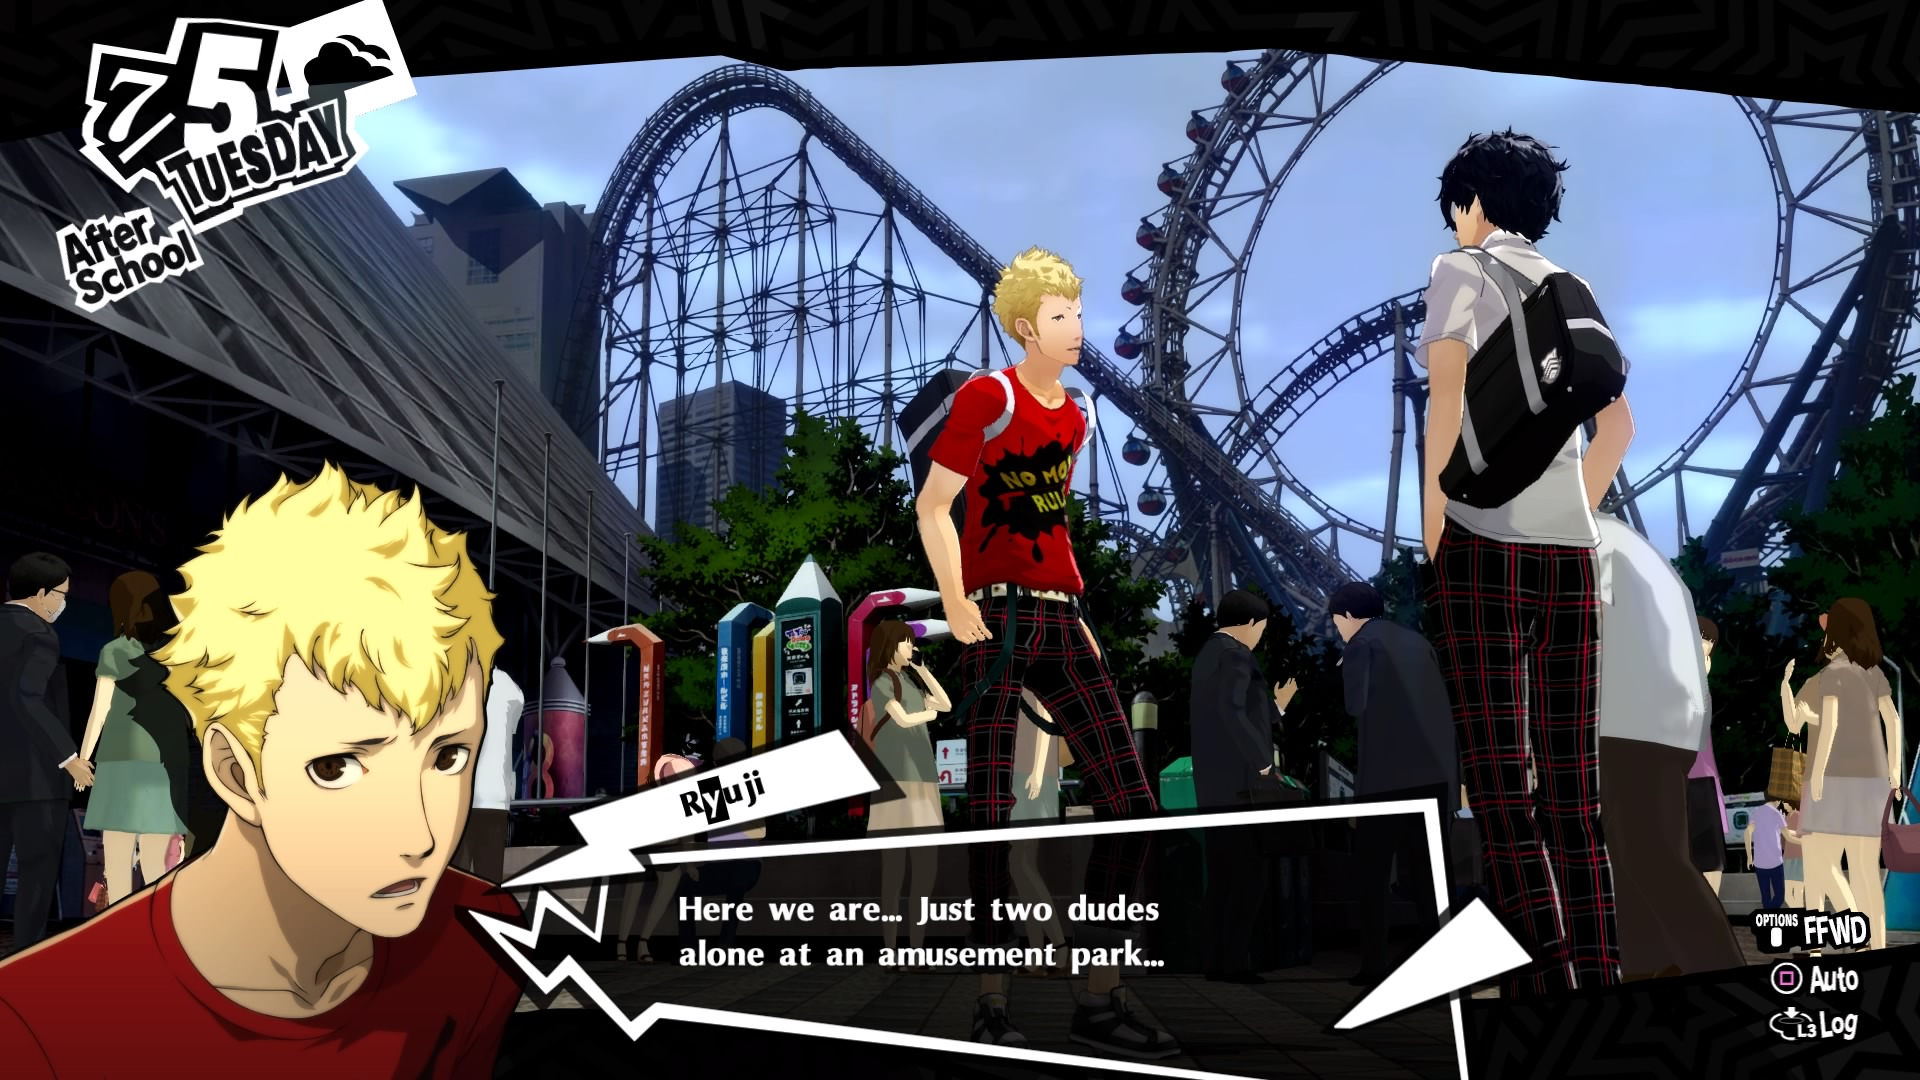 Persona 5 Royal's Himbos Are Too Dumb to See I'm Hitting On Them